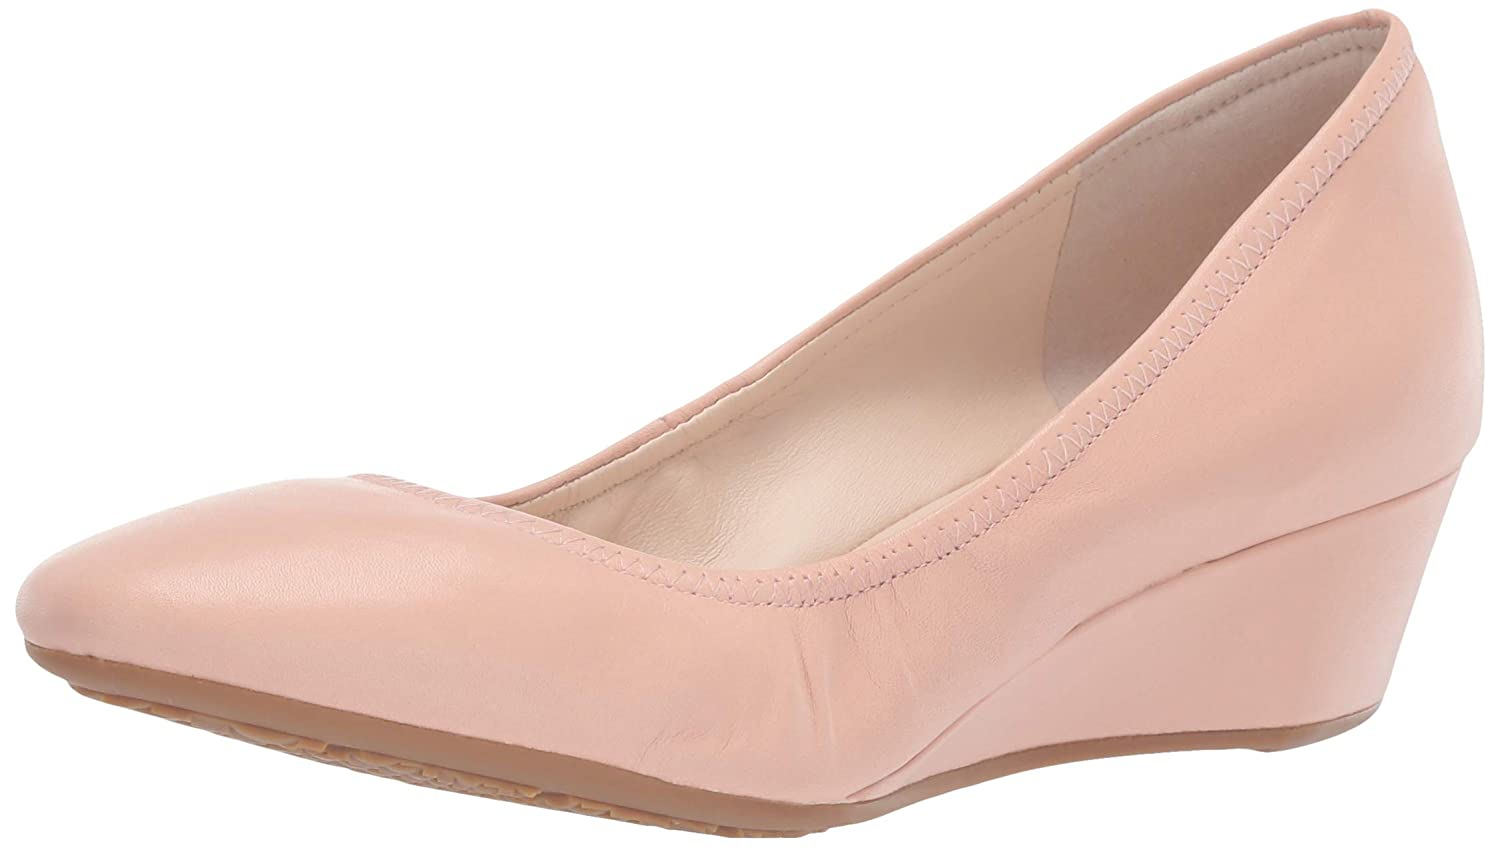 Mahogany pink Leather Cole Haan Women's Sadie Wedge 40MM Pump